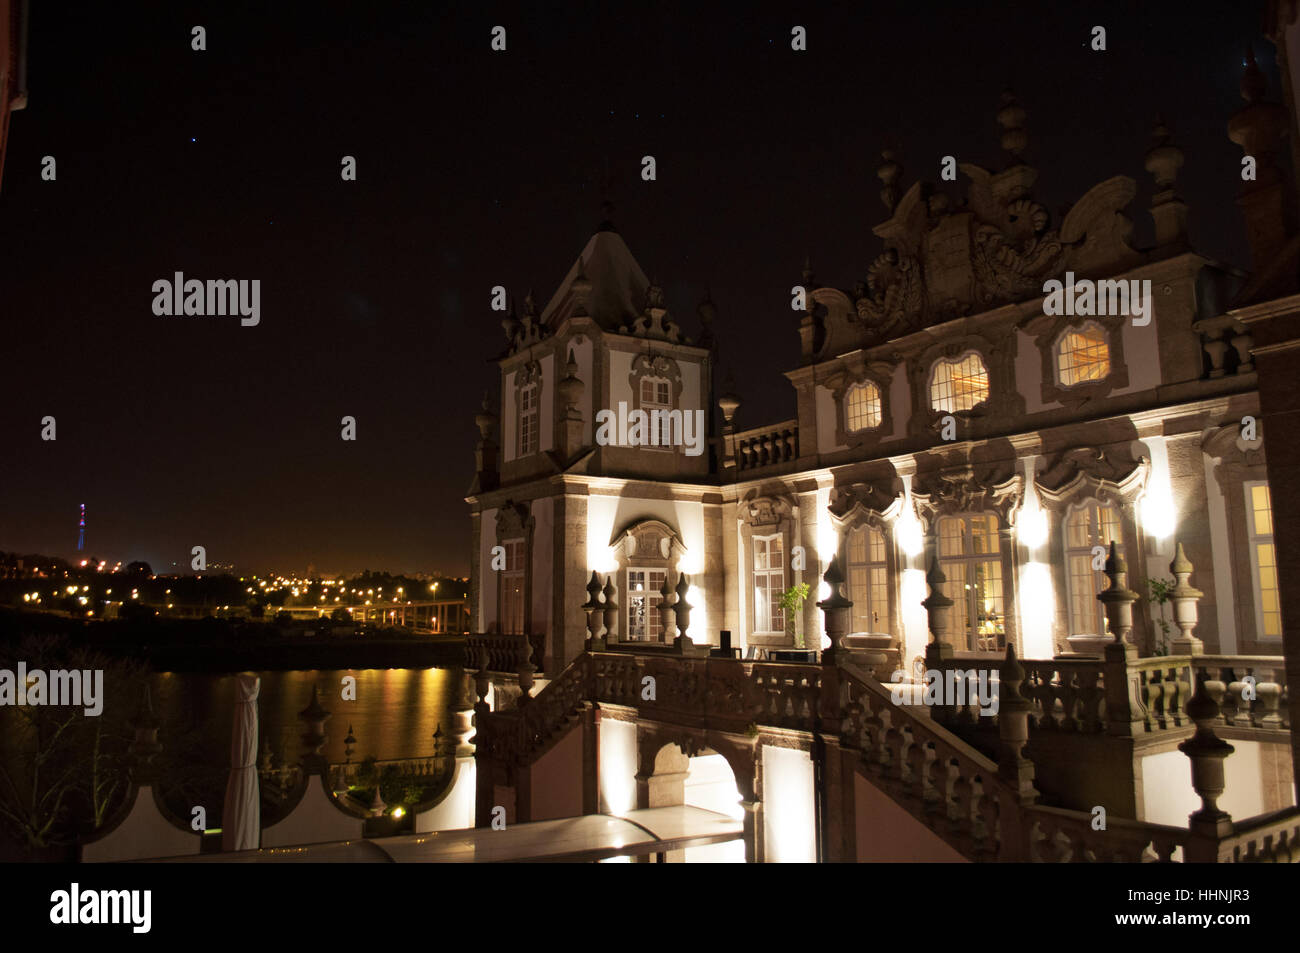 Porto: night view and details of Palace of Freixo, Palacio Do Freixo, formerly a 19th century palace converted in - Stock Image